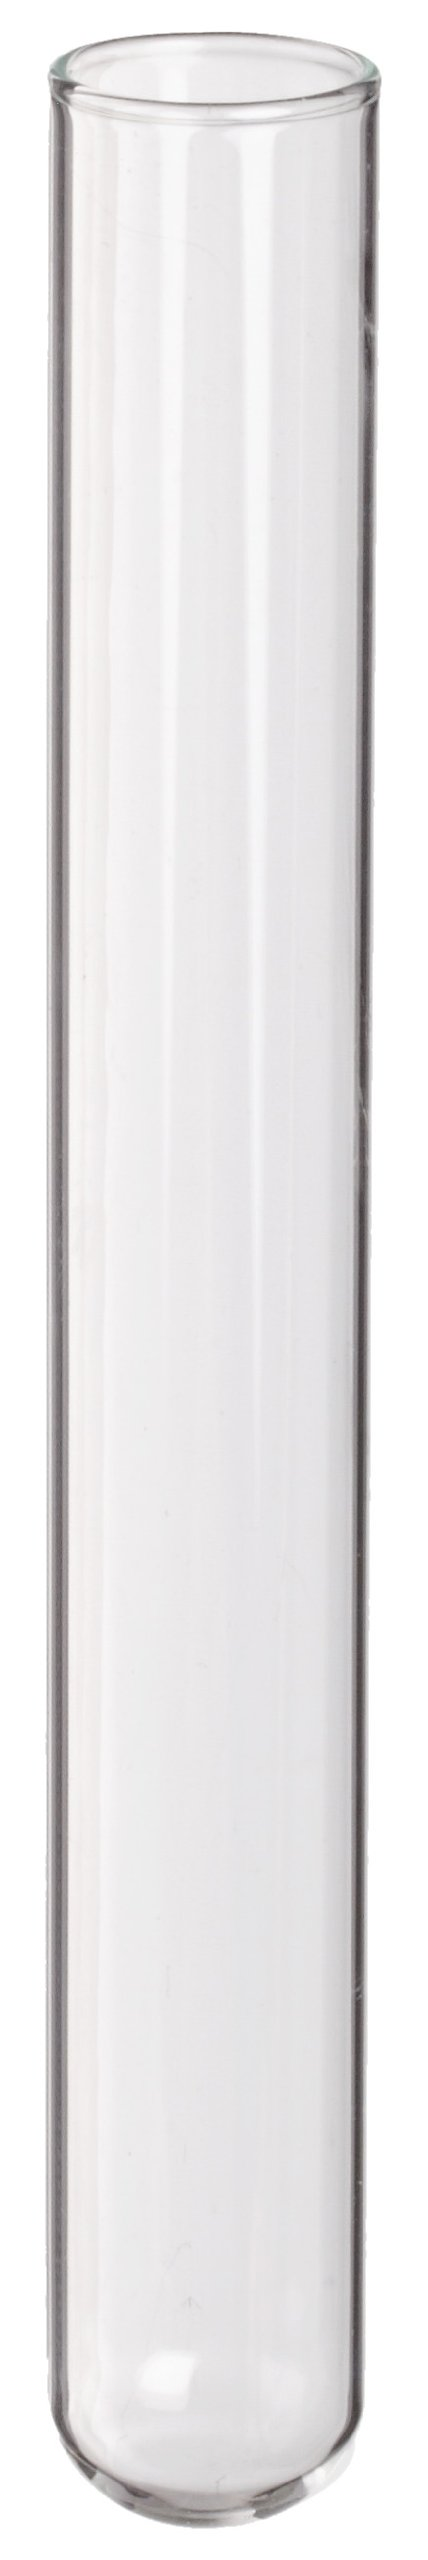 Kimble M13 Soda Lime Glass Mark-M Disposable Culture/Test Tube, with Plain Label (Case of 1000)